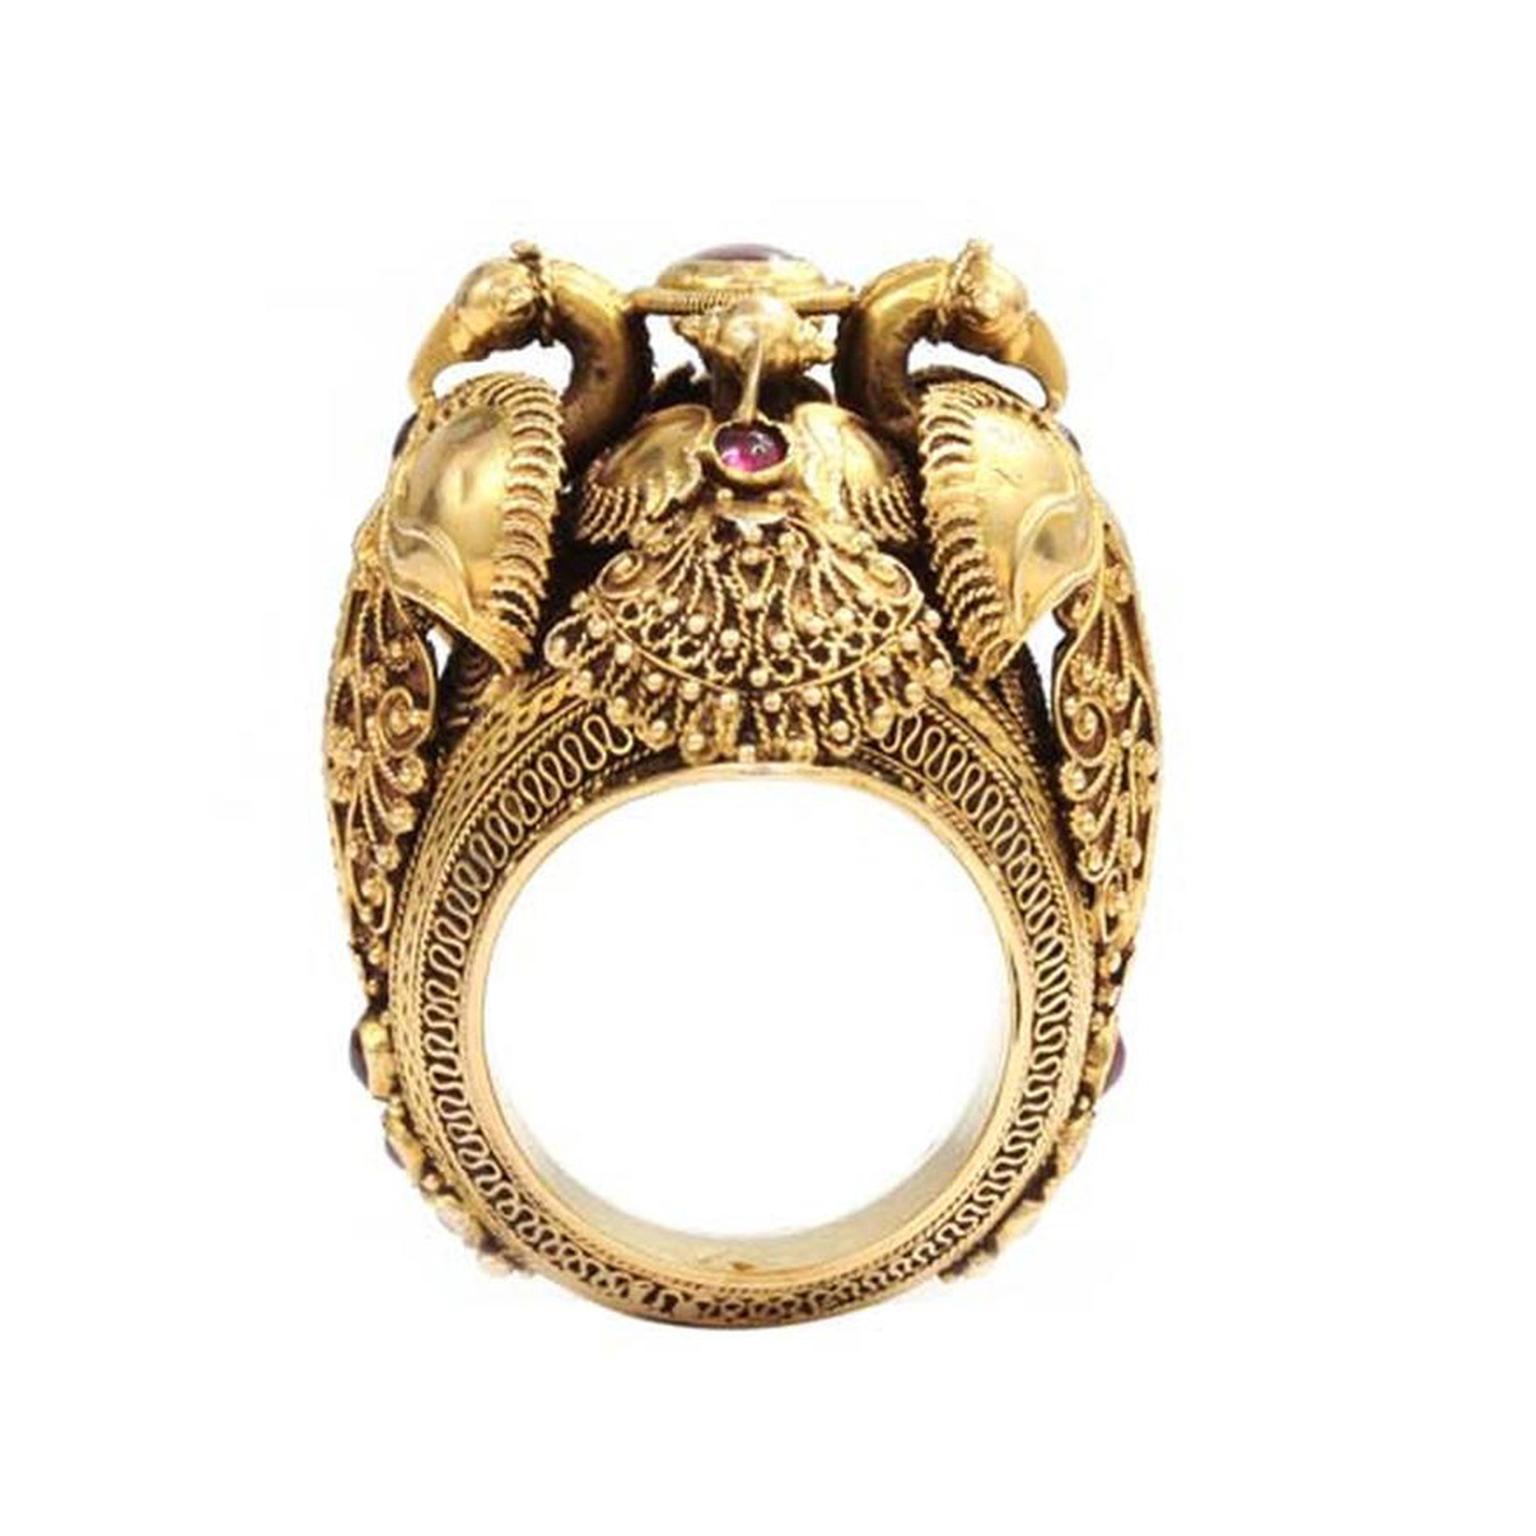 A vintage peacock ring worn by kings, in yellow gold and set with rubies, by C. Krishniah Chetty and Sons.